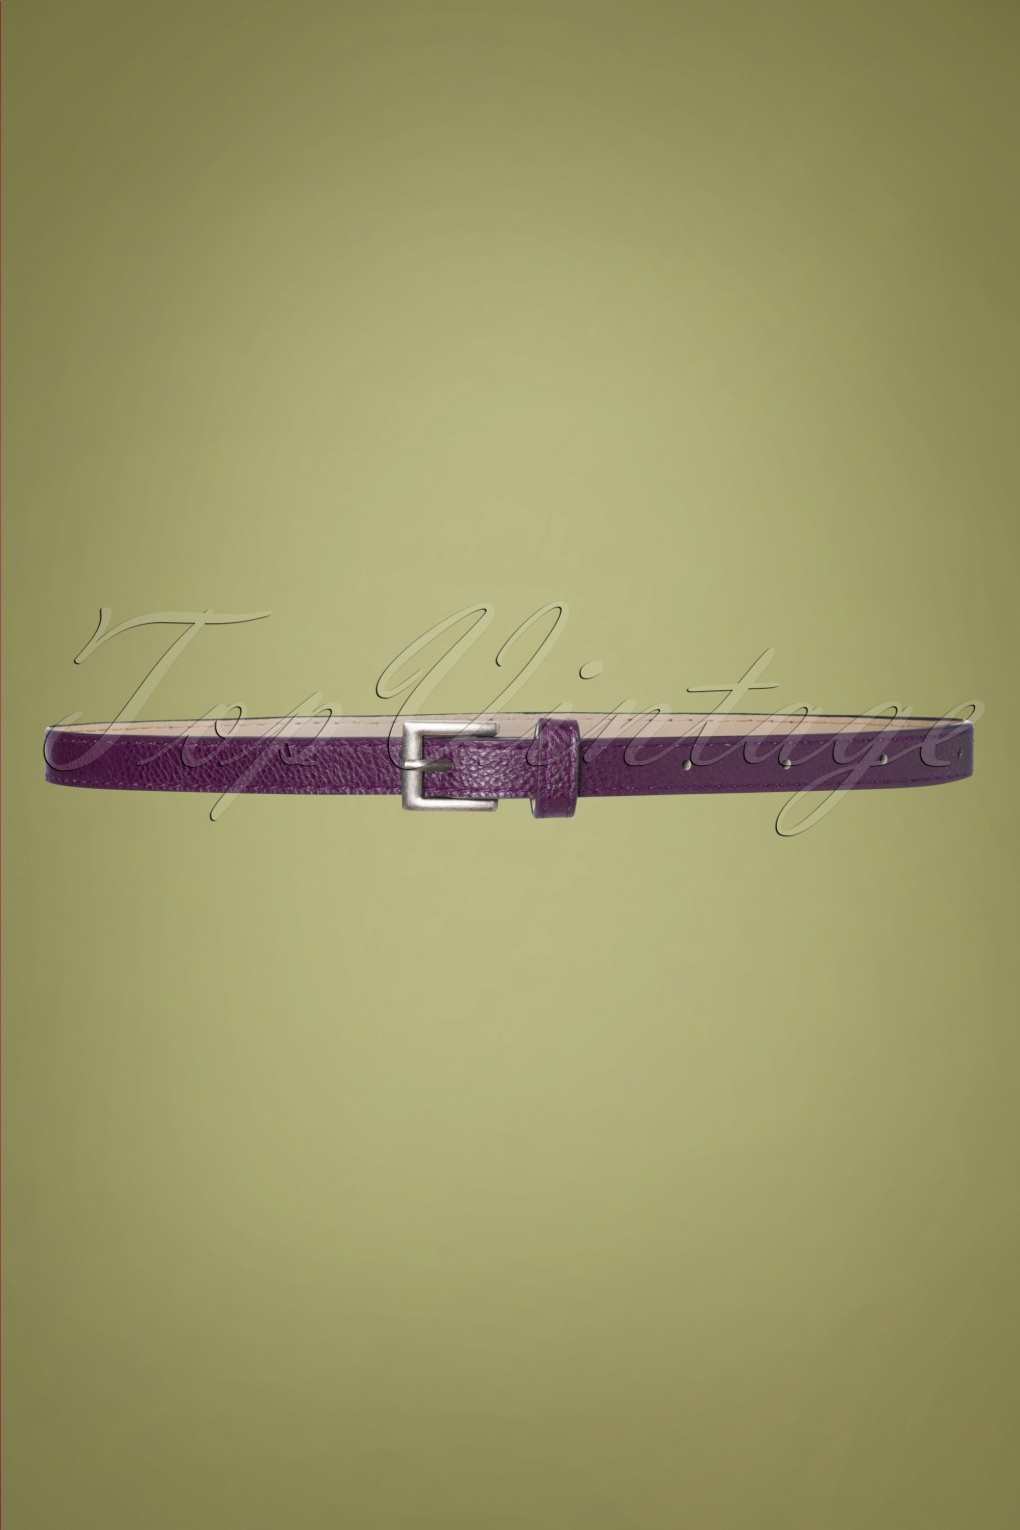 A History of Belts 1920-1960 60s From The Mind Of A Dee Jay Belt in Purple £9.81 AT vintagedancer.com